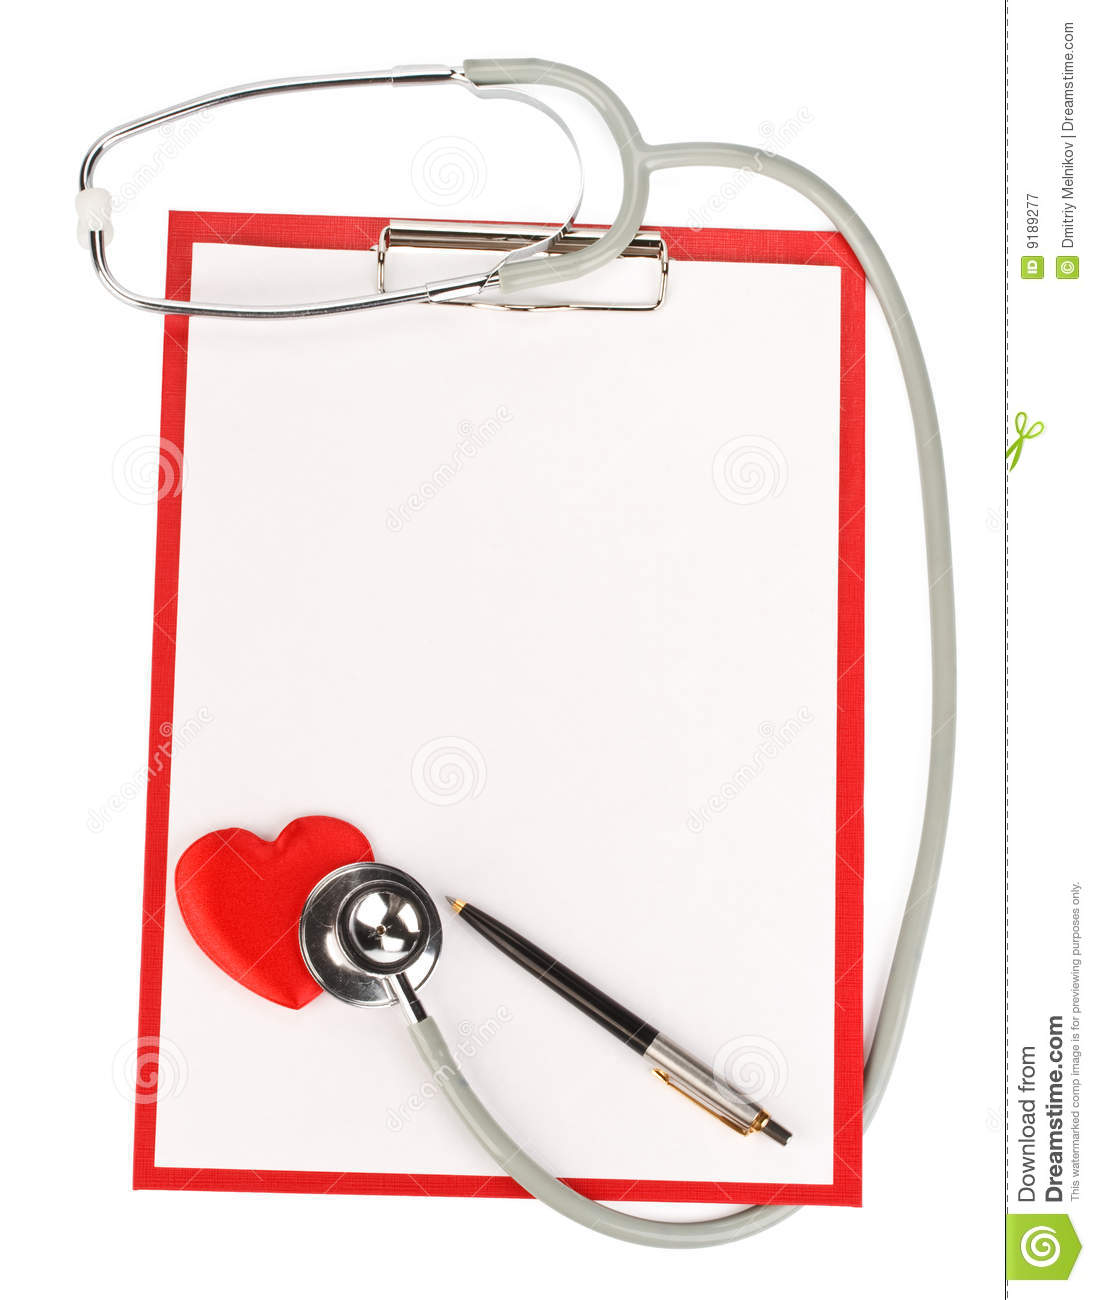 Blank Clipboard With Stethoscope Royalty Free Stock